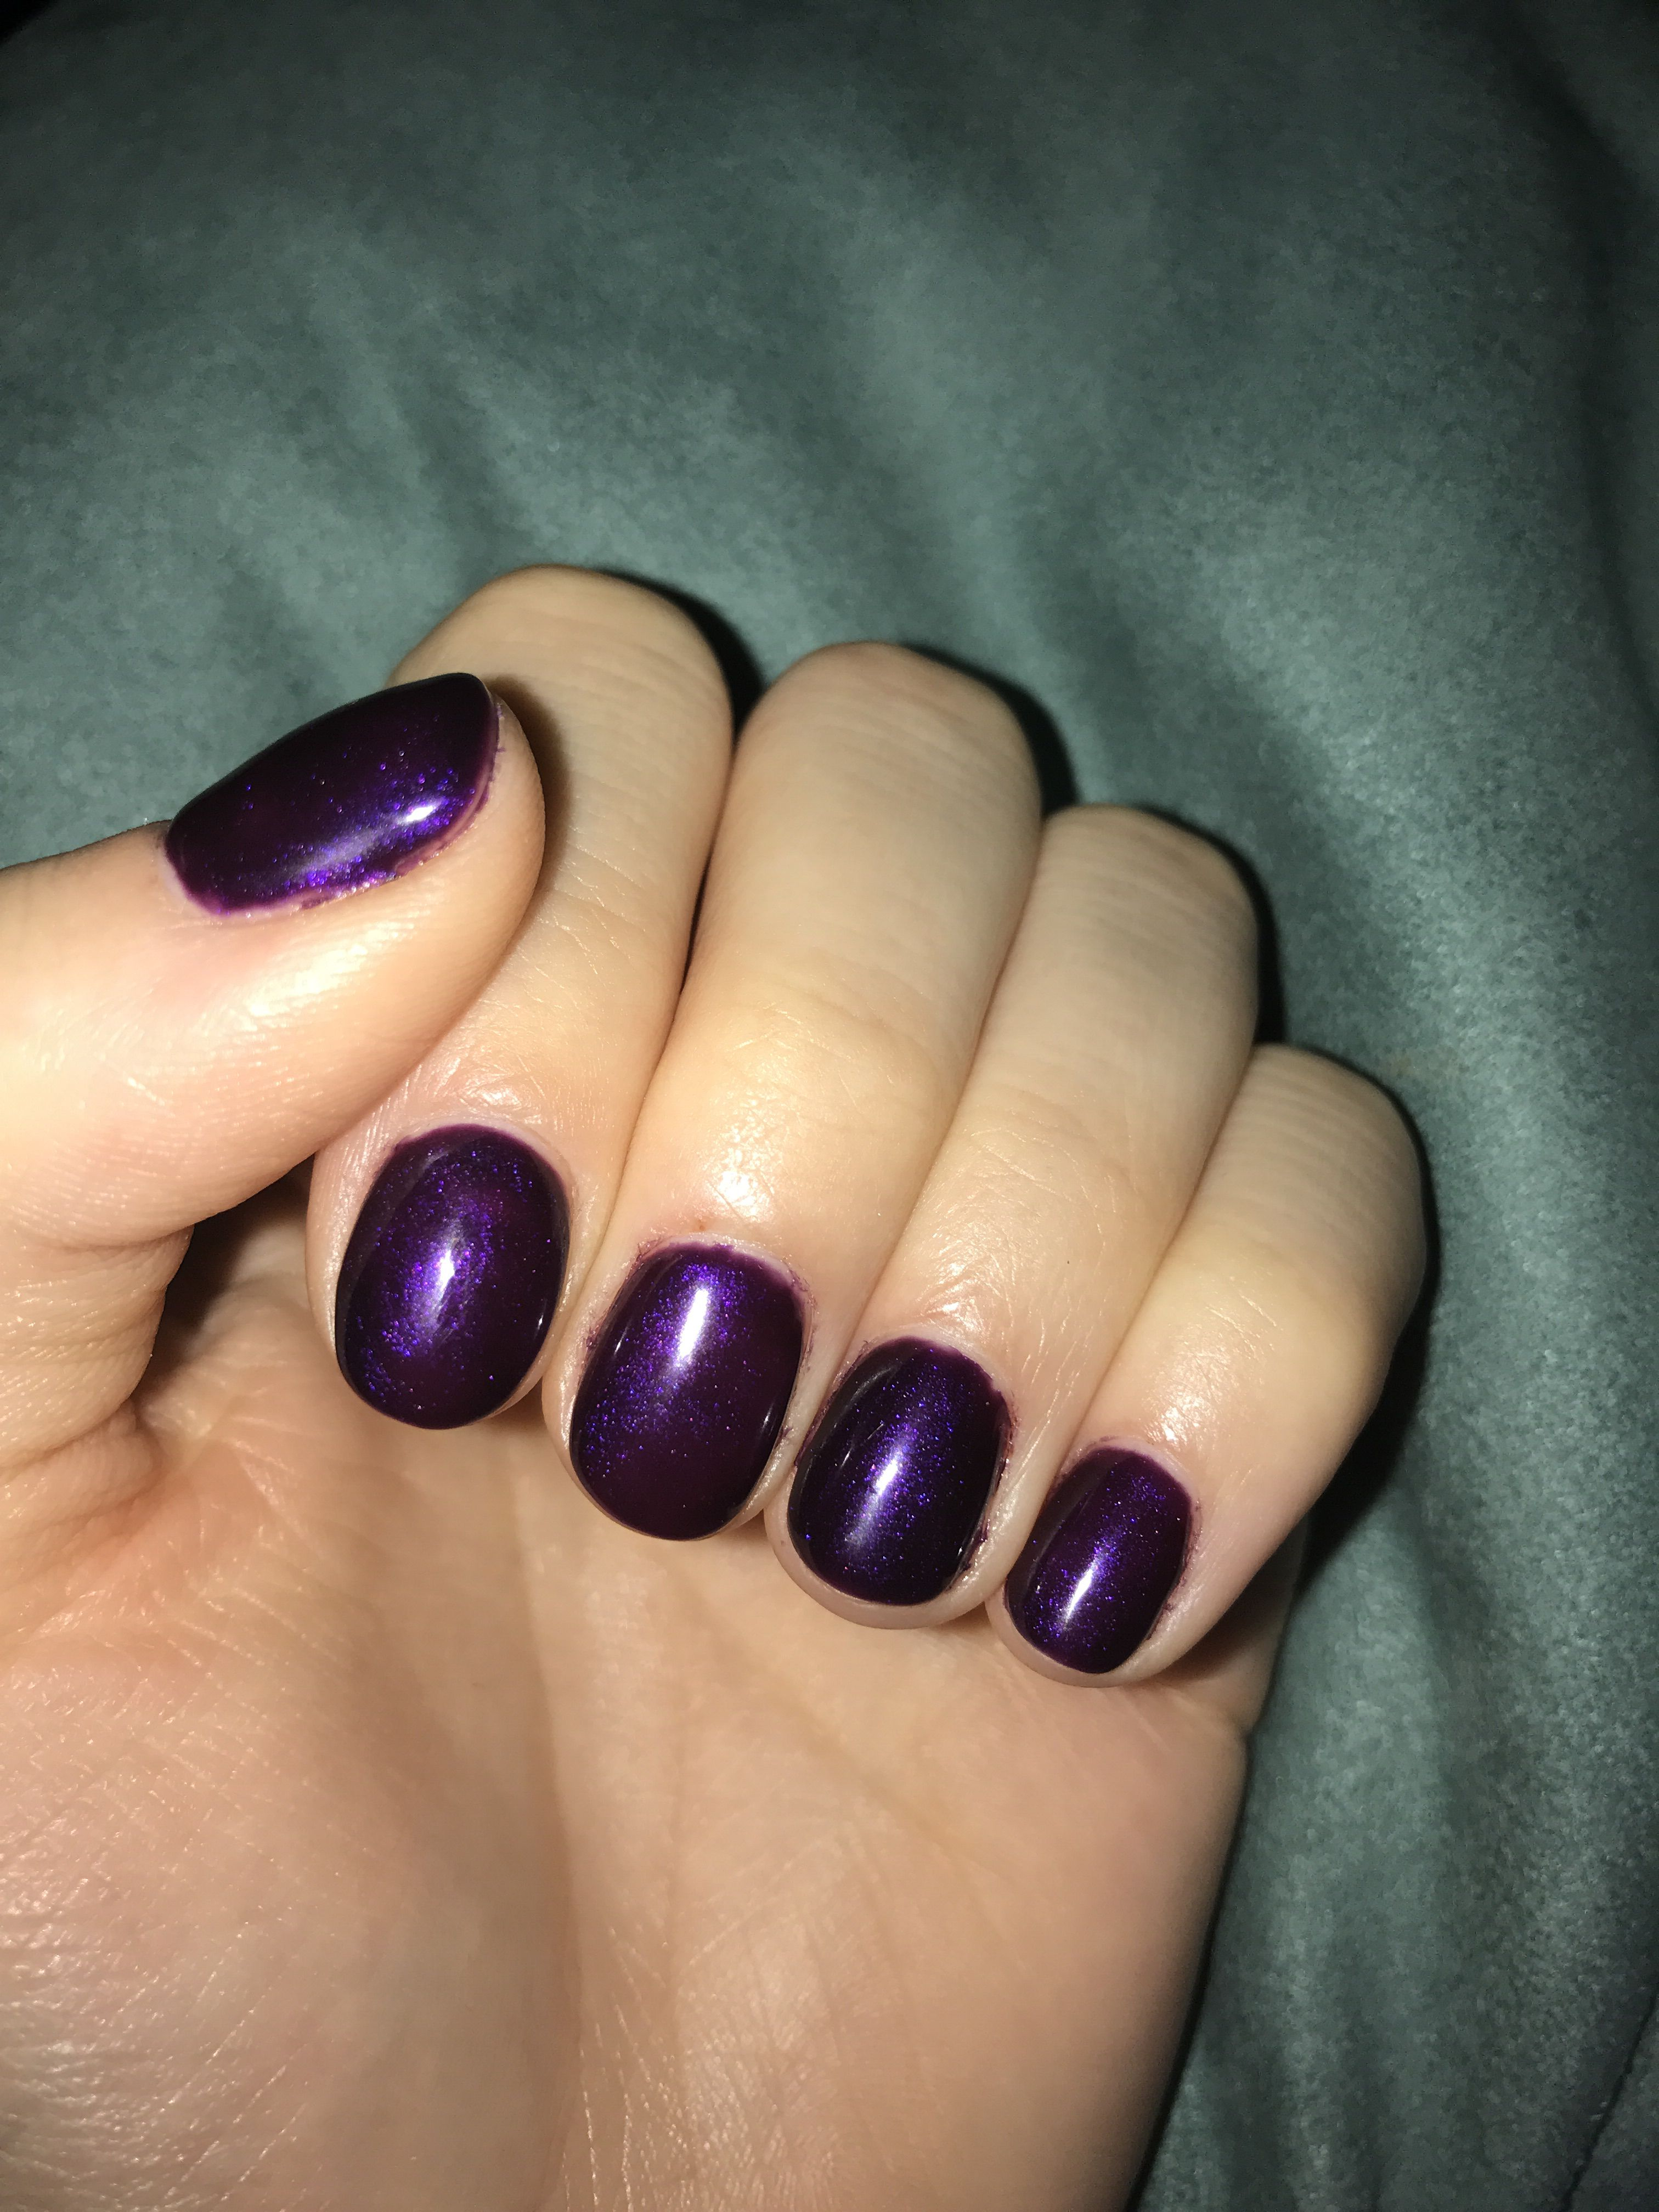 Pin by kelly shaffer on diy shellac pinterest shellac diy build your own bricolage shellac nails fai da te crafting do it yourself diys solutioingenieria Images